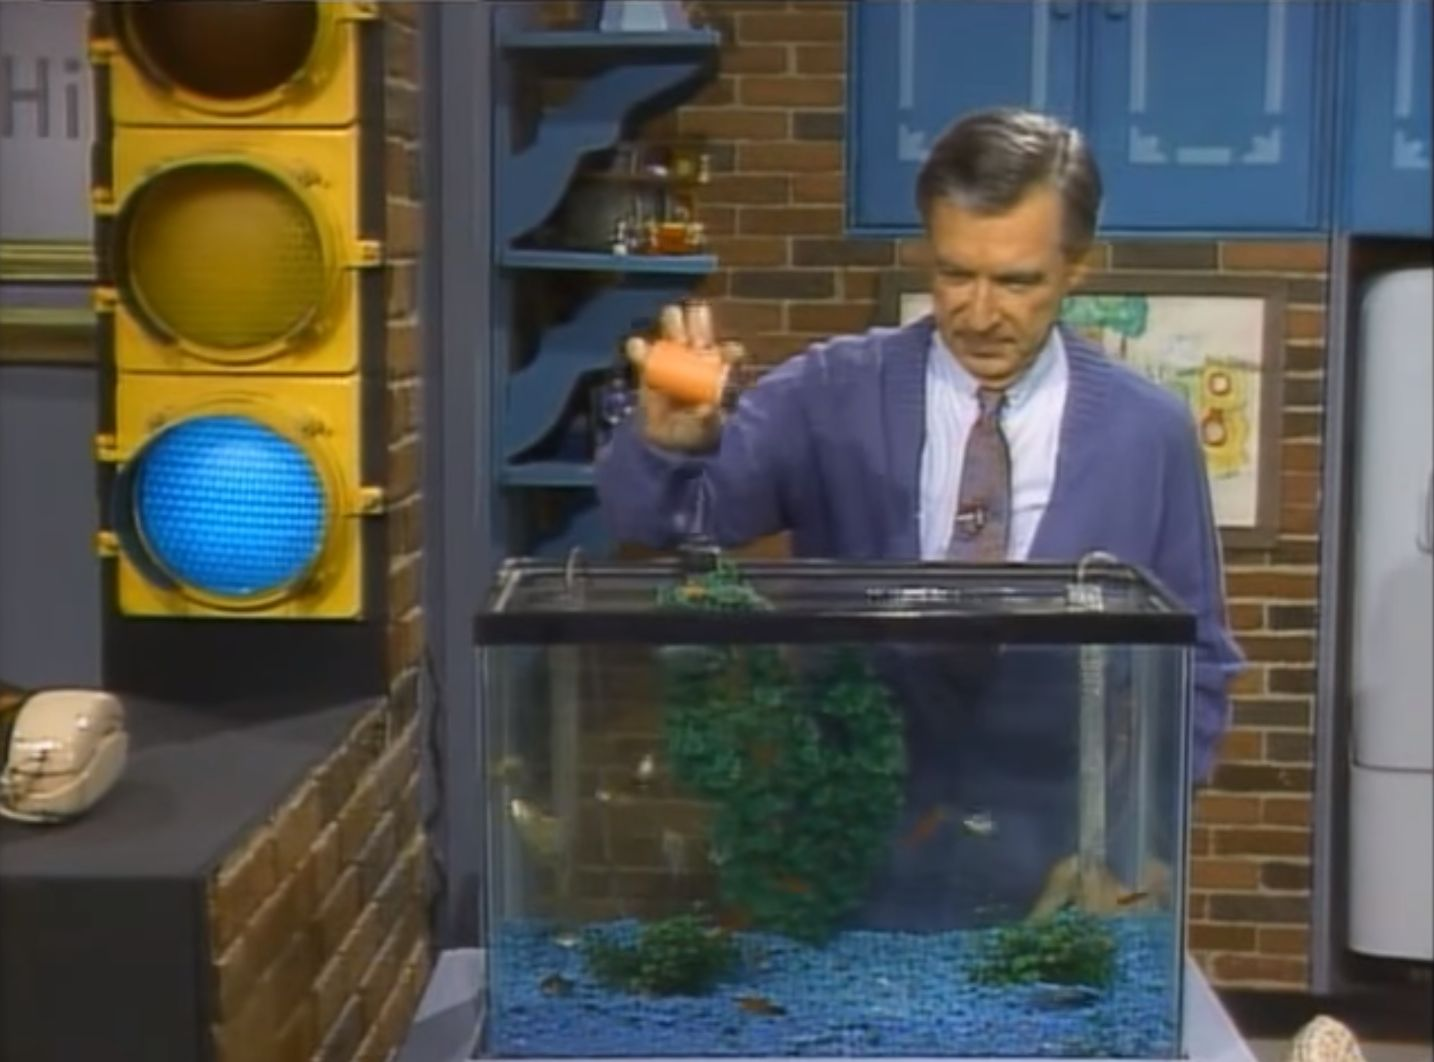 Mr Rogers Always Announced He Was Feeding His Fish After Getting Letter From Young Girl